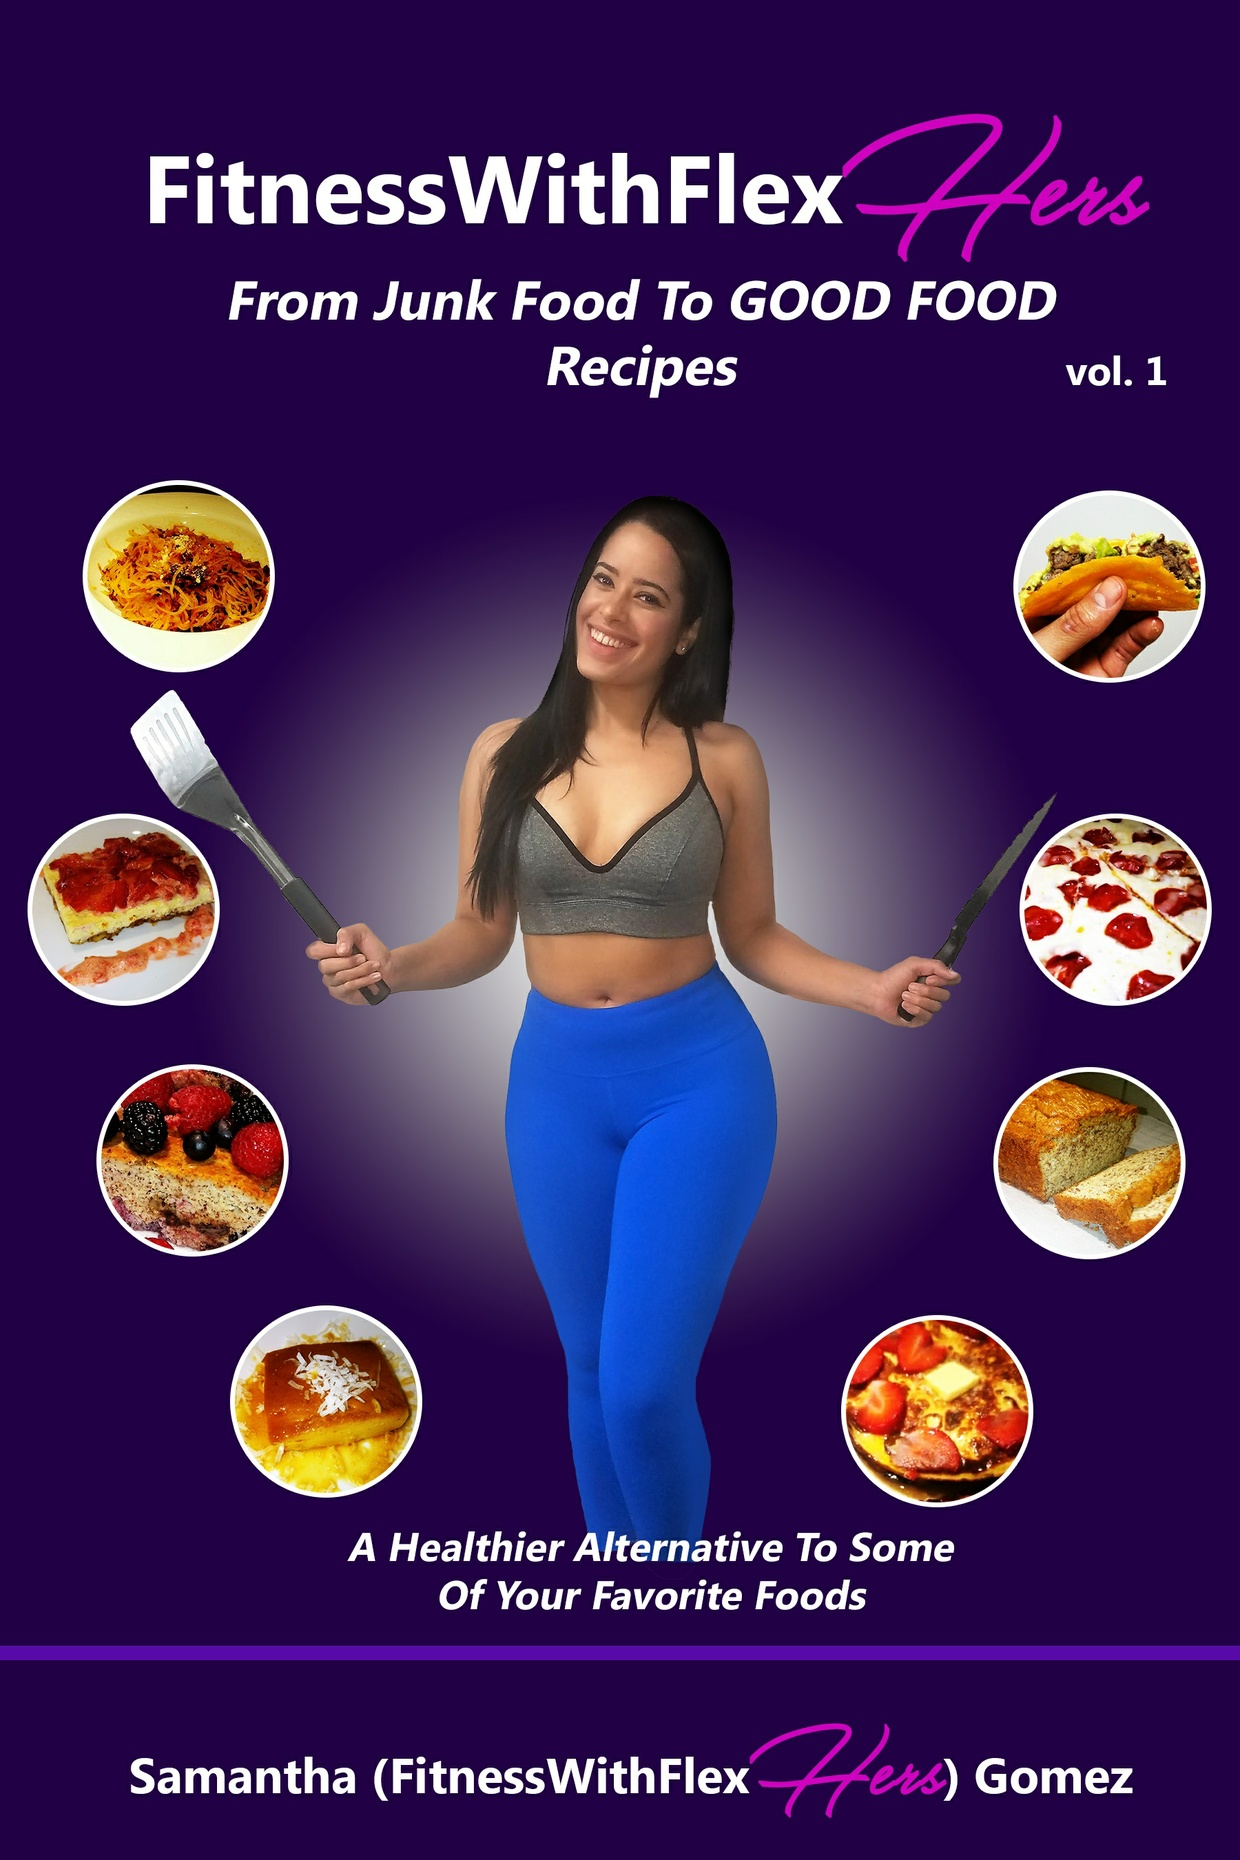 FitnessWithFlexHERS From Junk Food To GOOD FOOD Vol 1